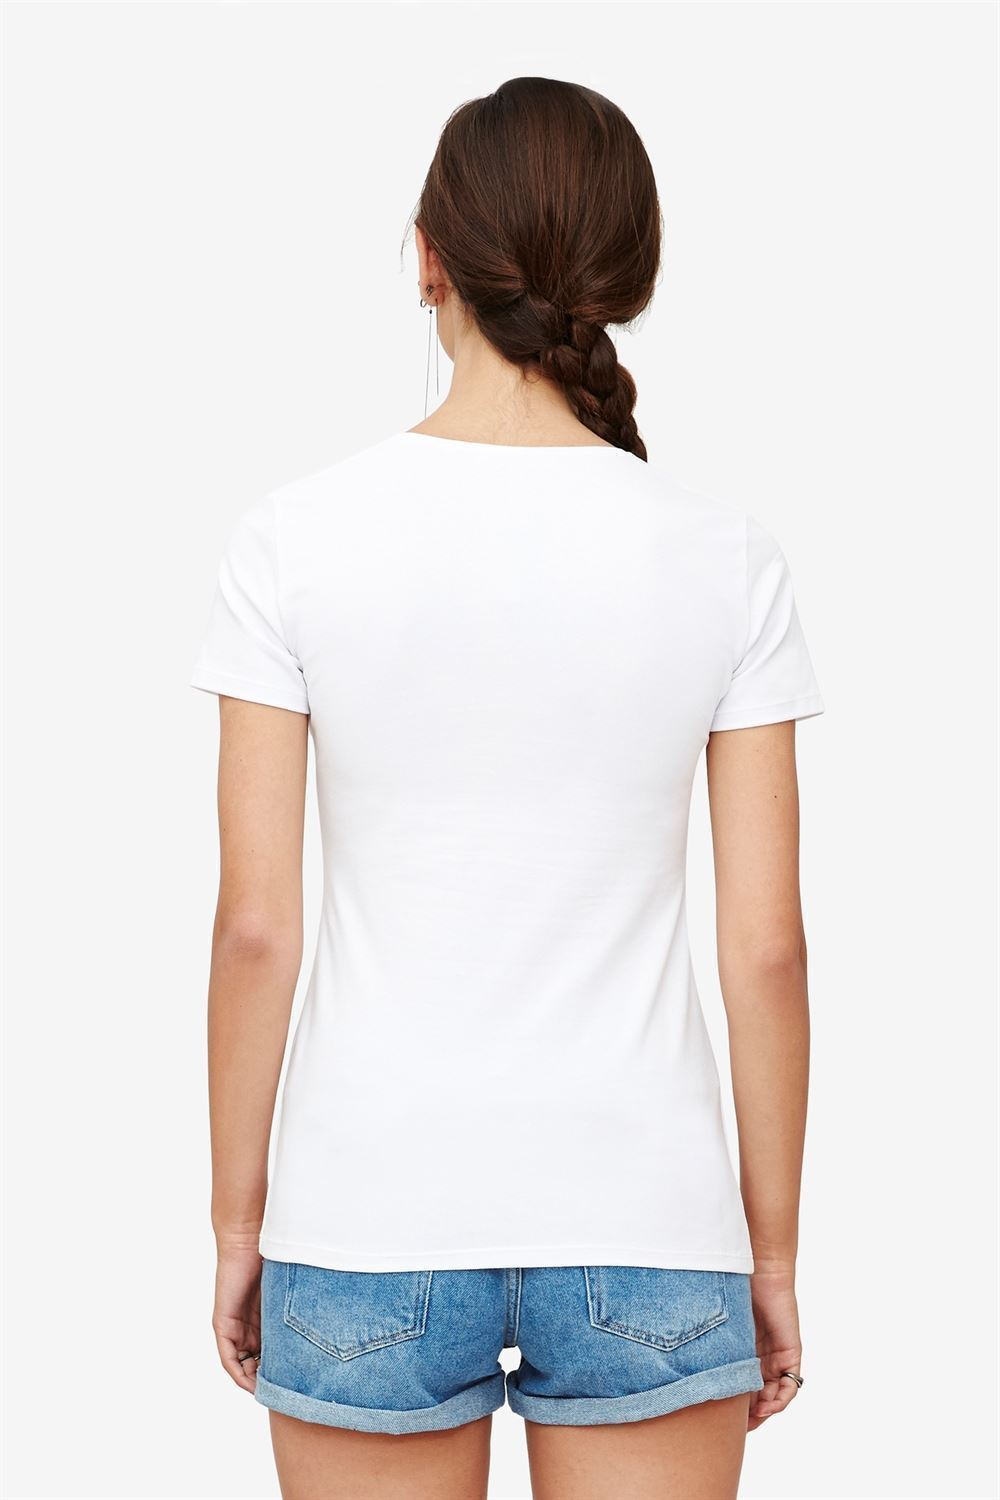 White nursing top with V-neck and wrap-around look in Organic cotton - seen from behind